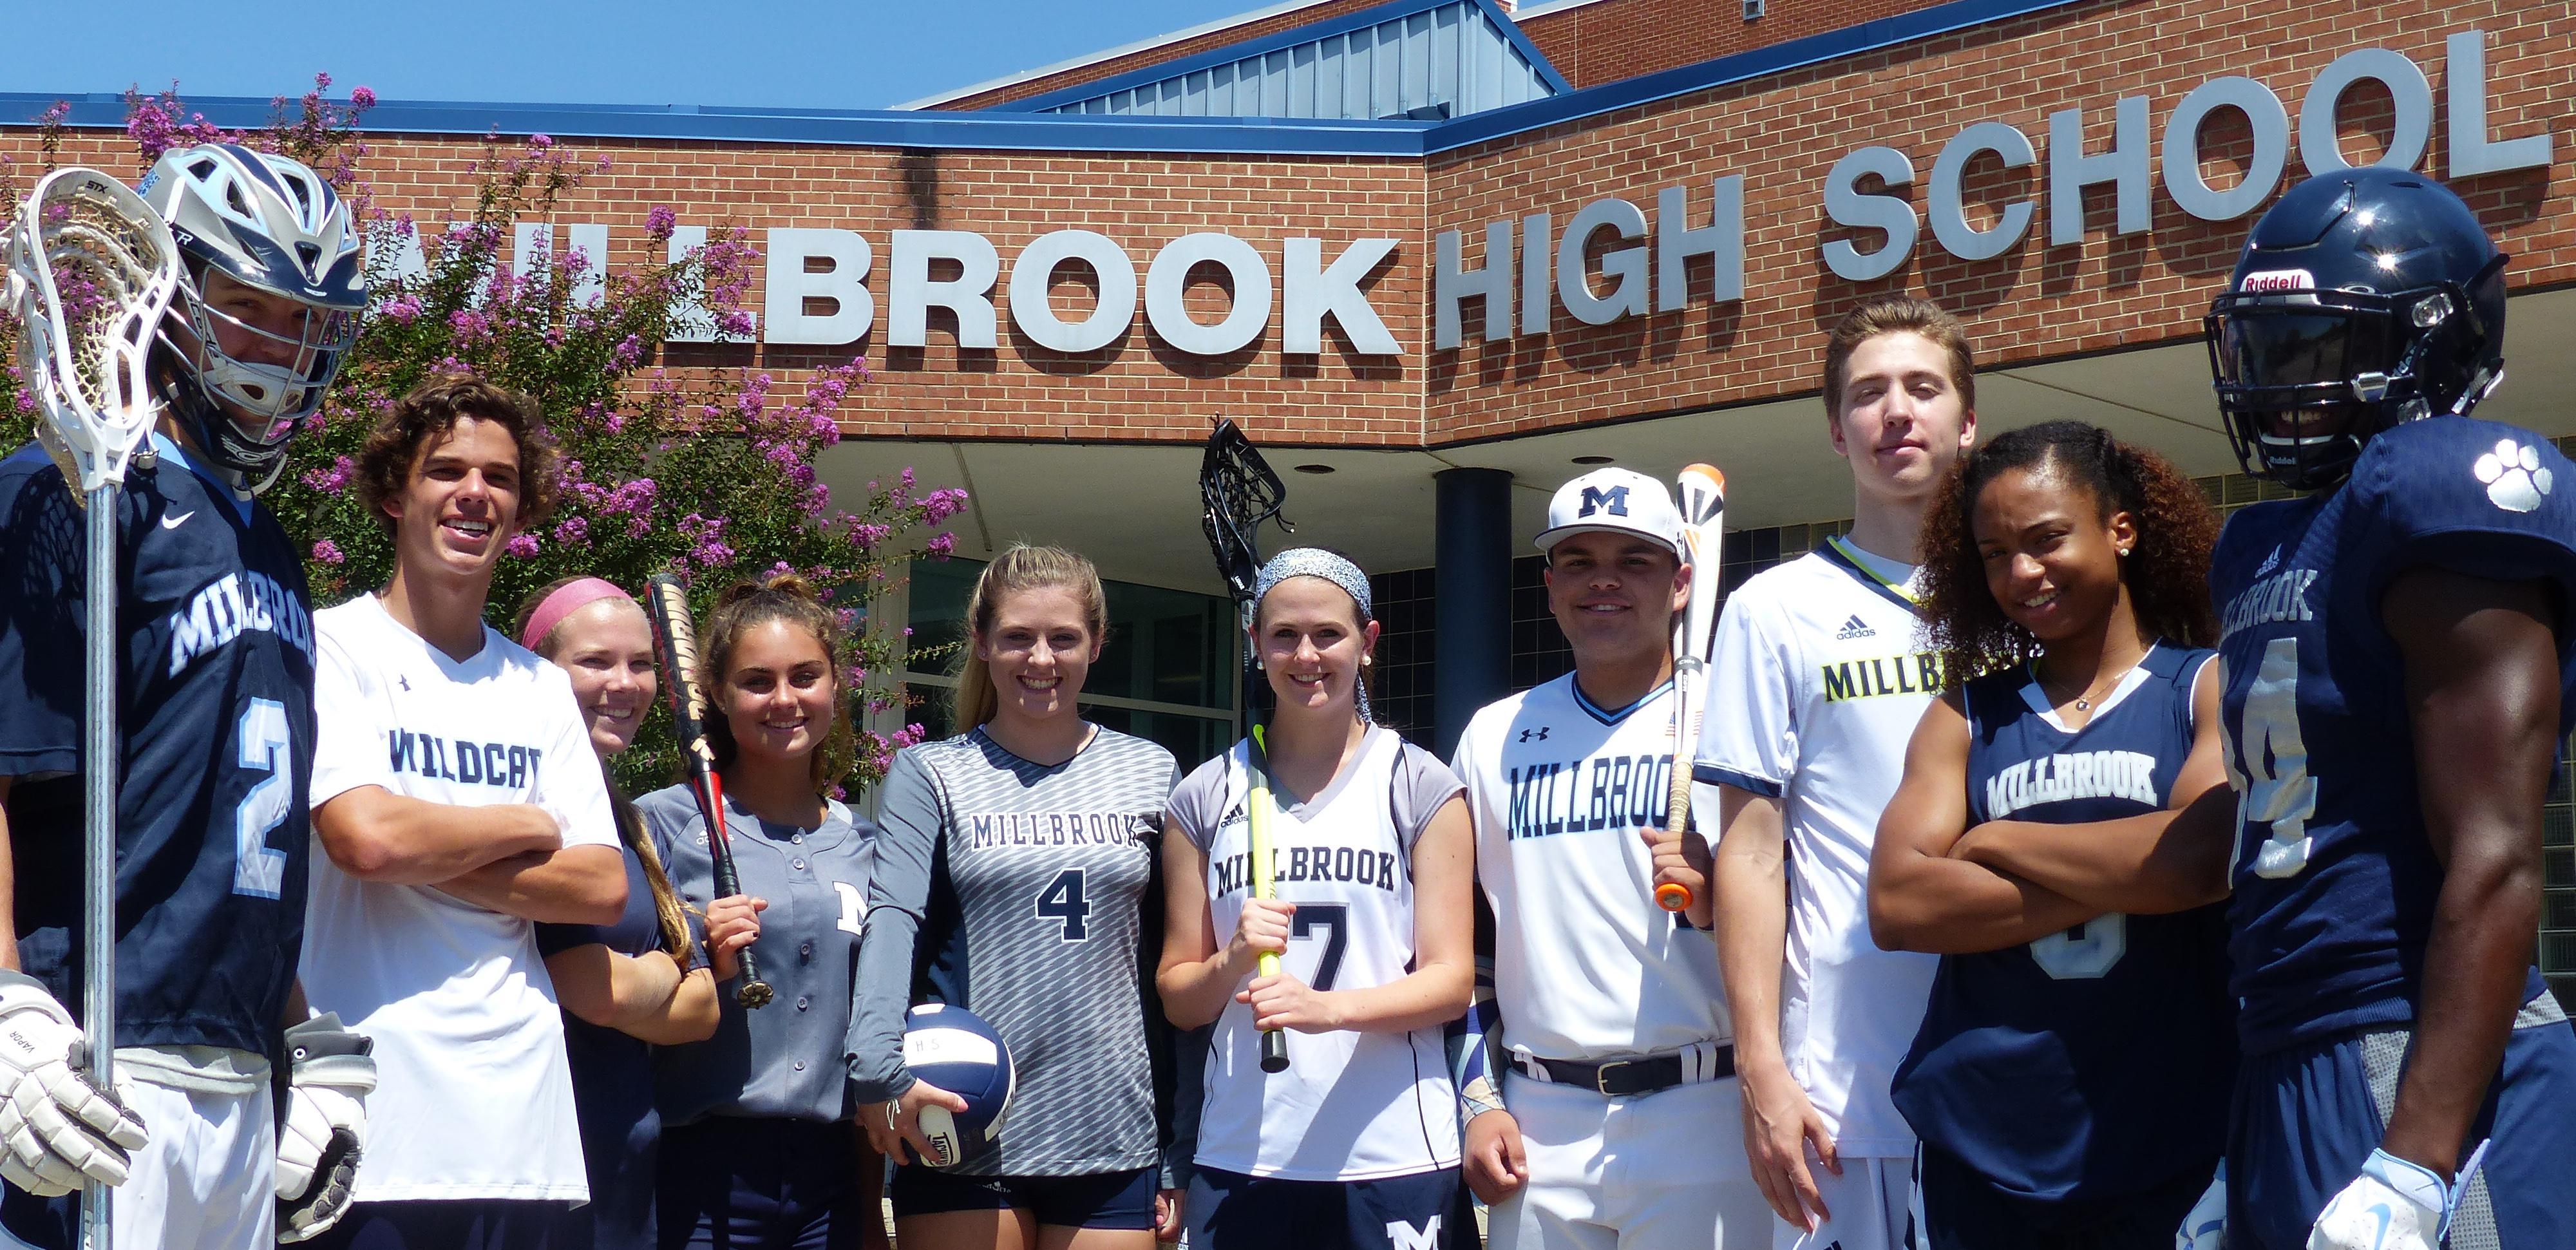 Millbrook athletes from all sports pose for a photo